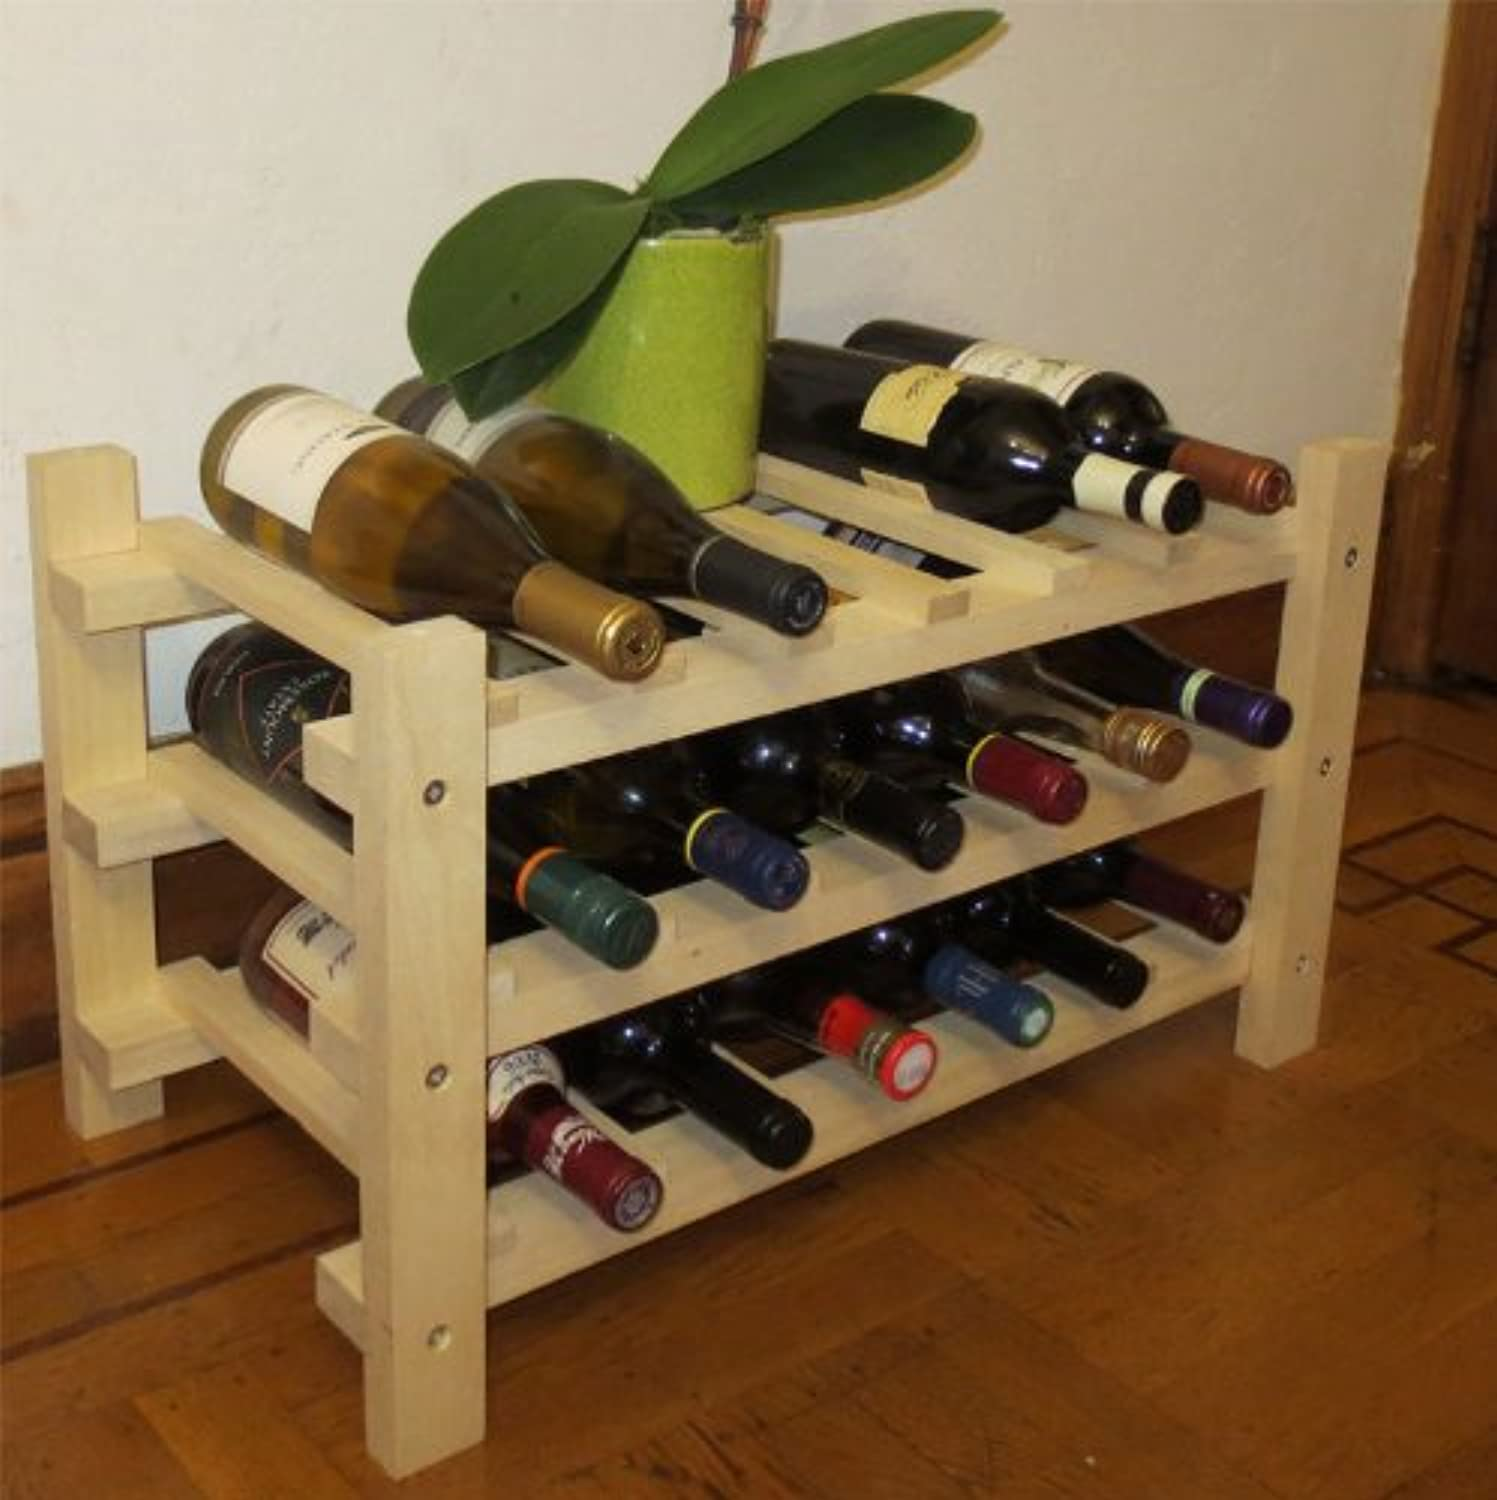 18 Bottle Capacity Wine Rack Storage Shelves, Solid Wood, WN18 by DisplayGifts